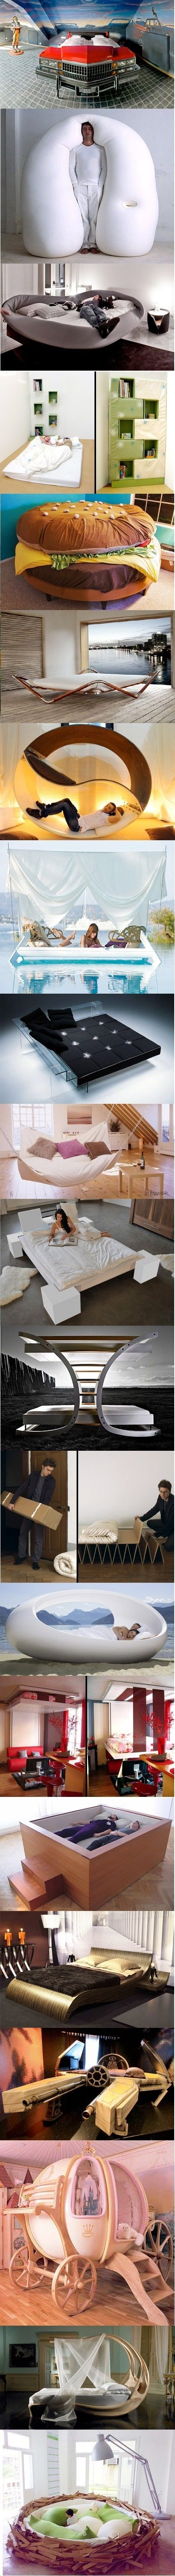 cool beds